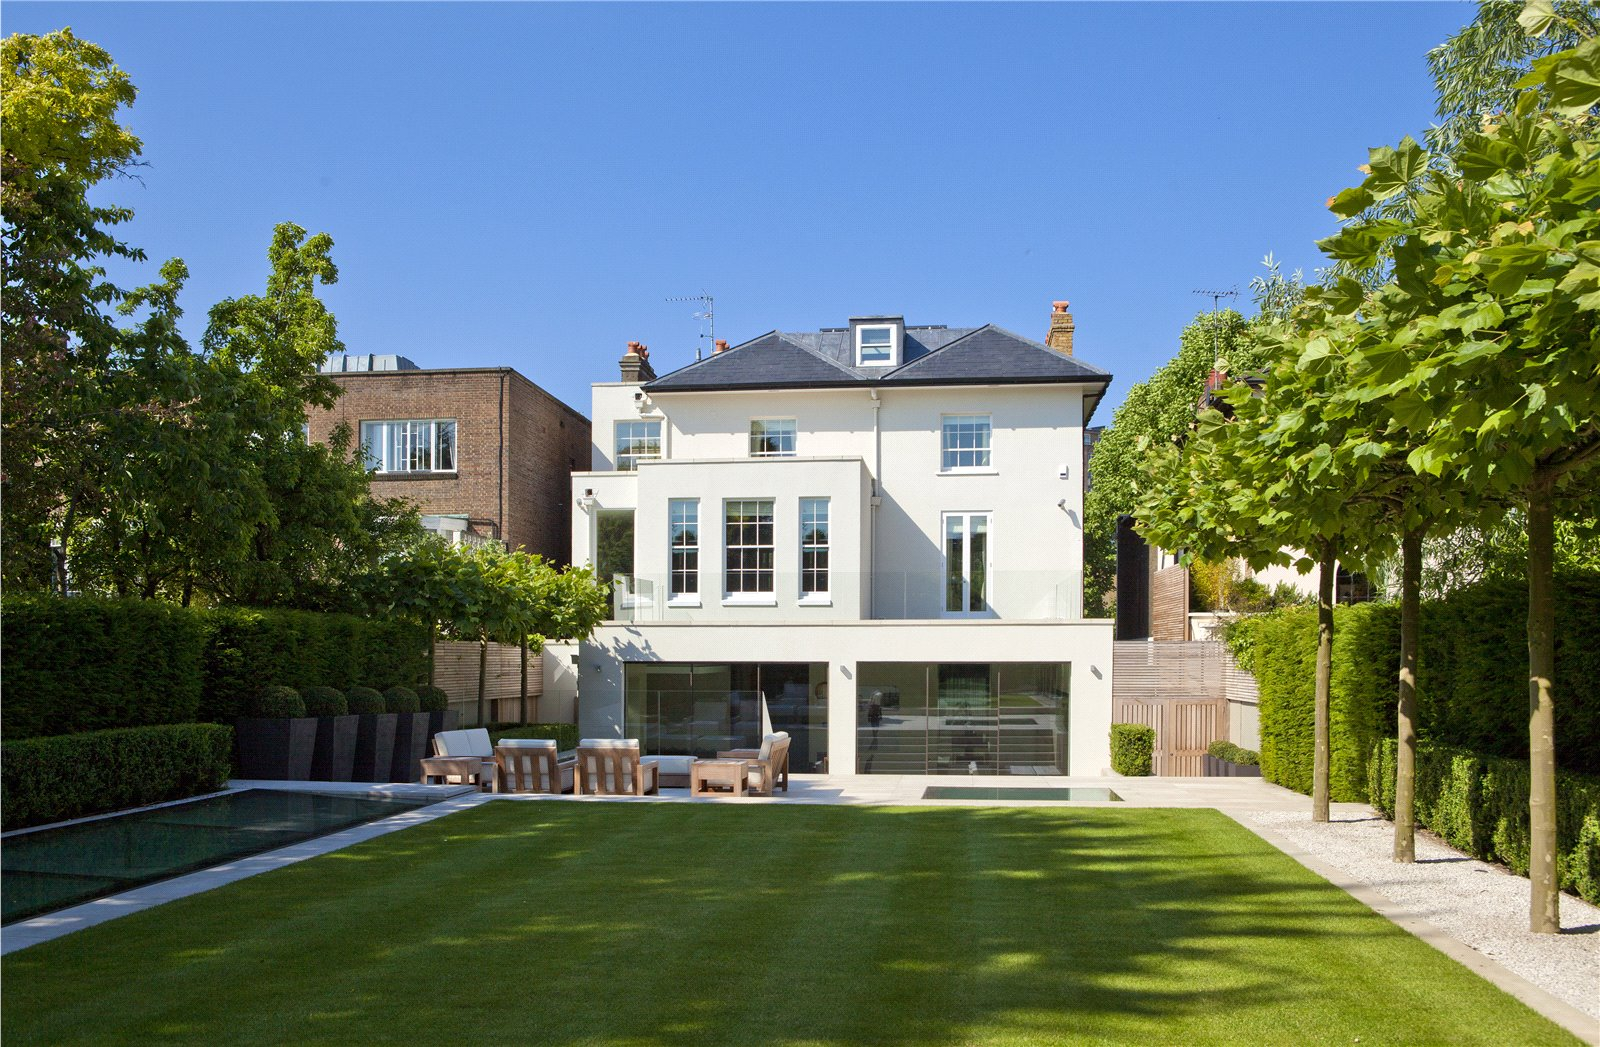 Other for Rent at Hamilton Terrace, St John's Wood, London, NW8 Hamilton Terrace, St John's Wood, London, NW8